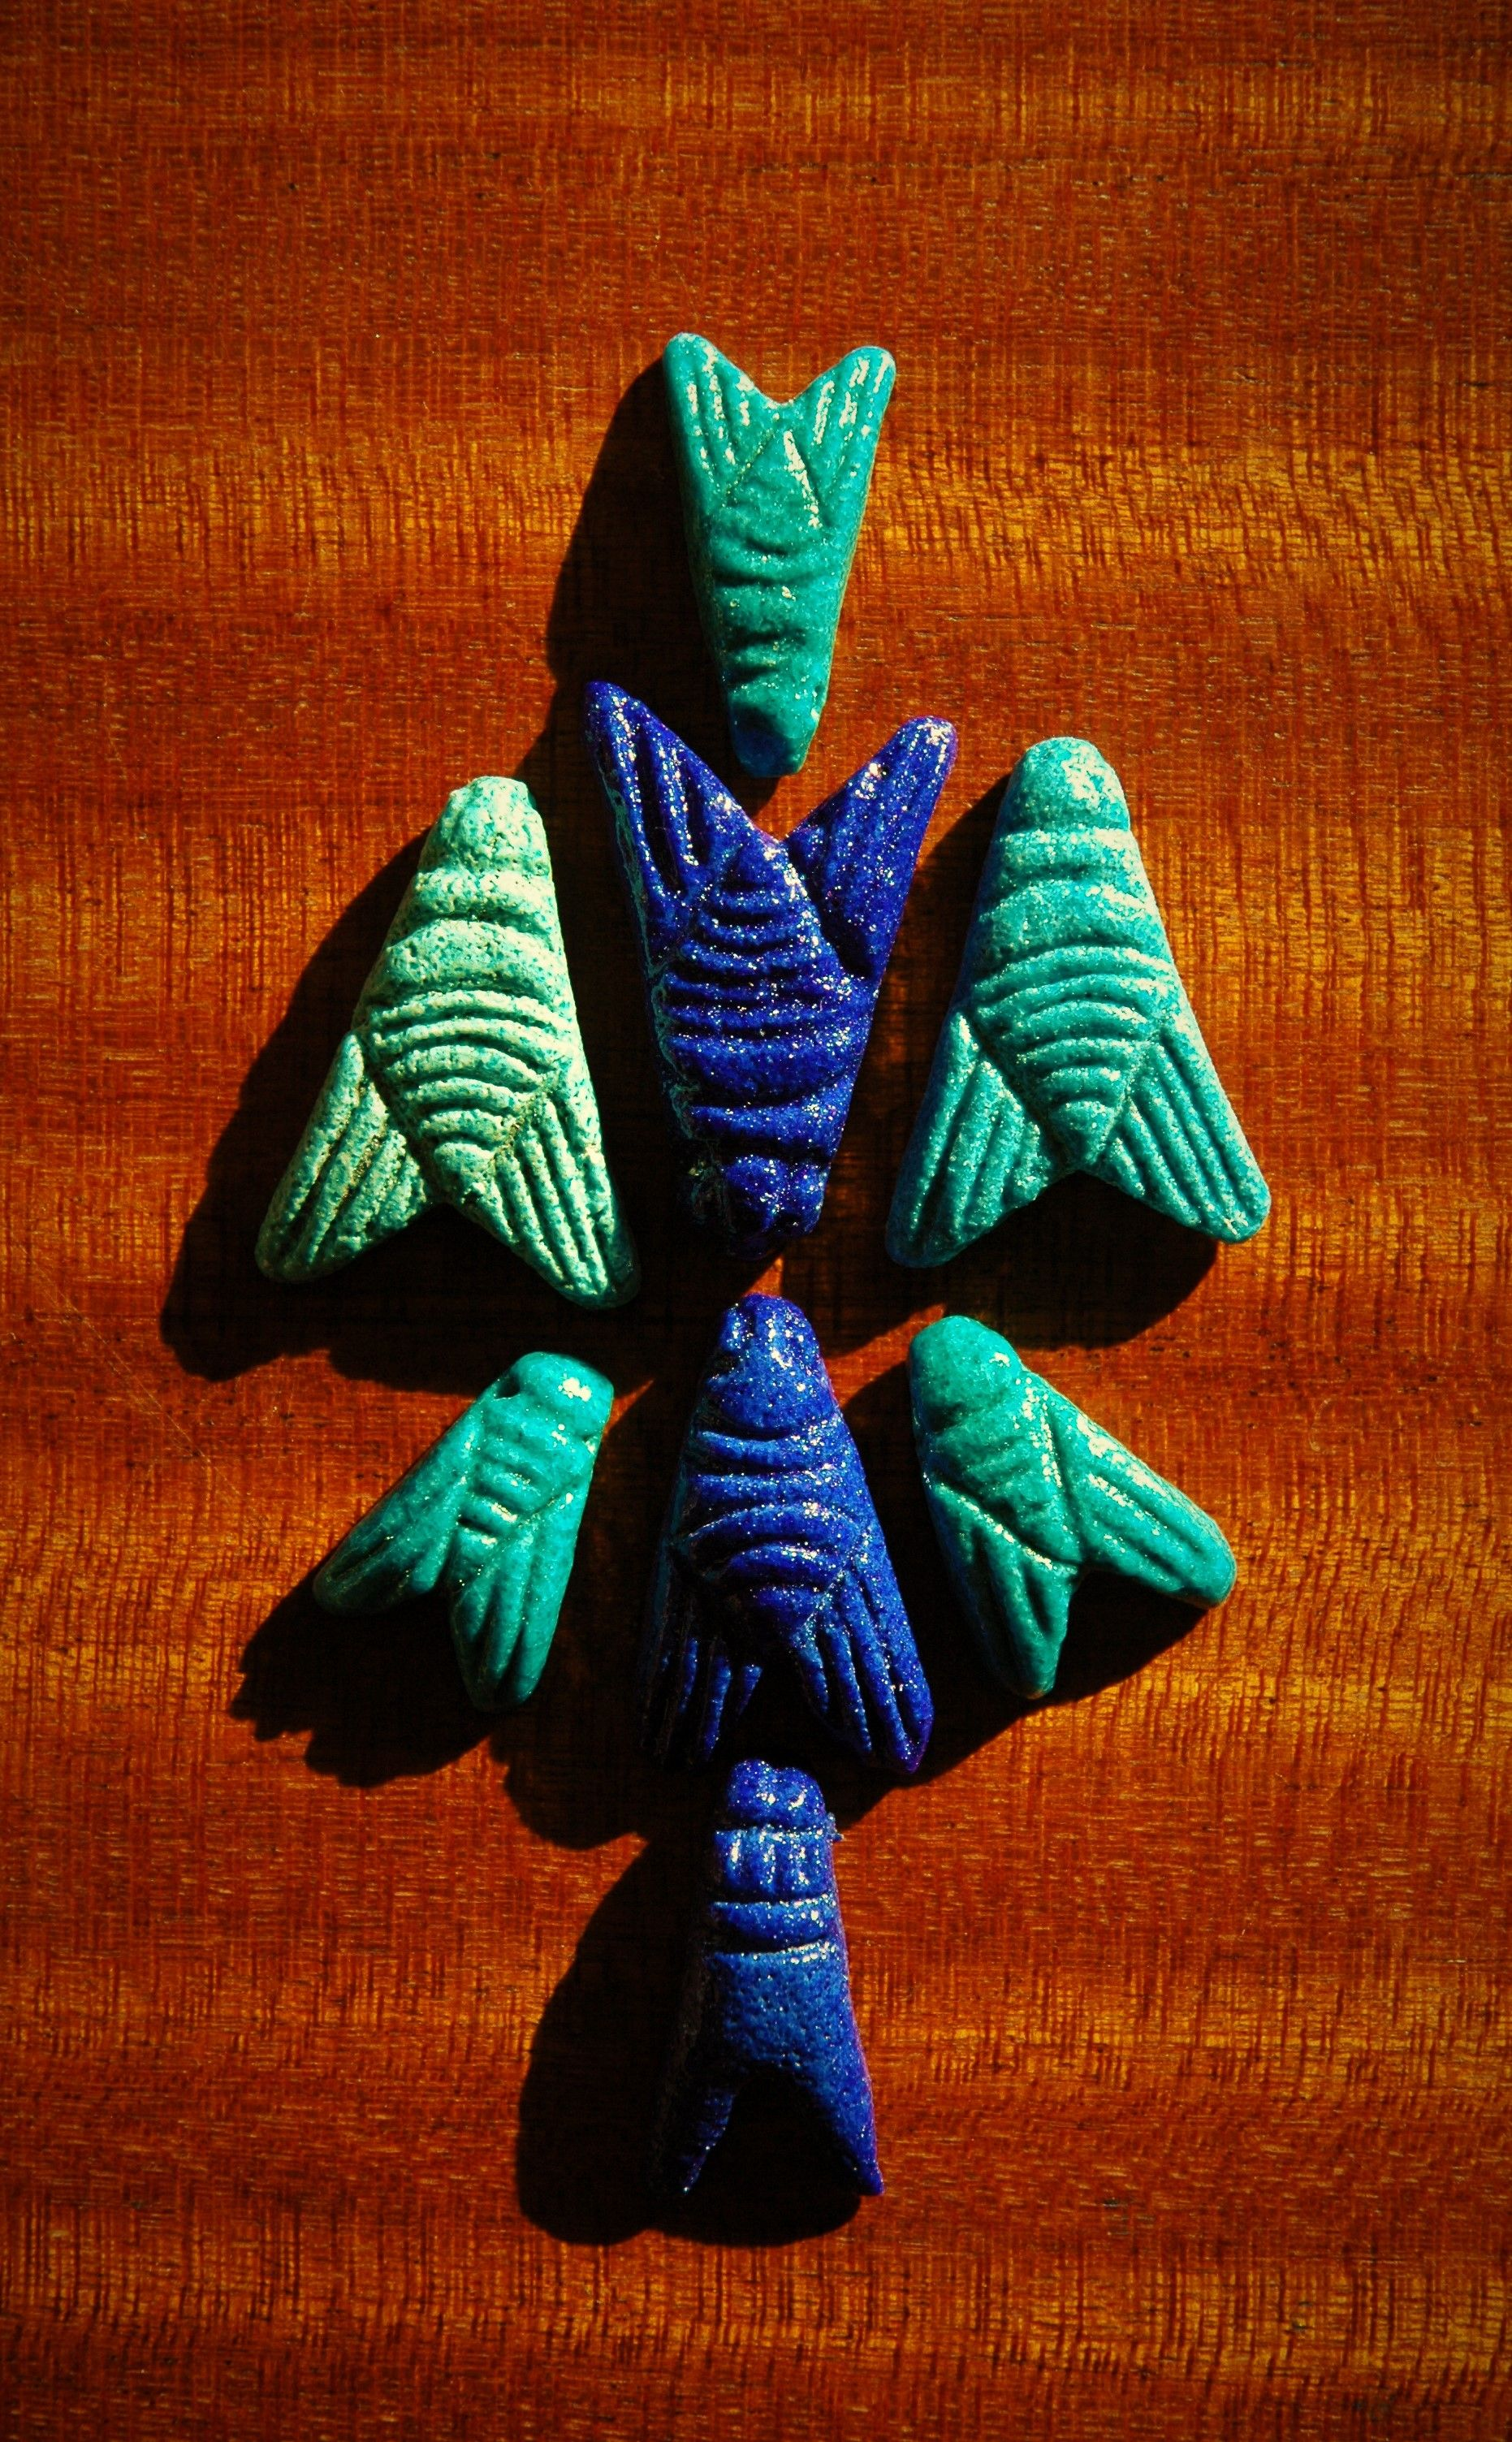 Cobalt Blue And Turquoise Egyptian Paste Faience Fly